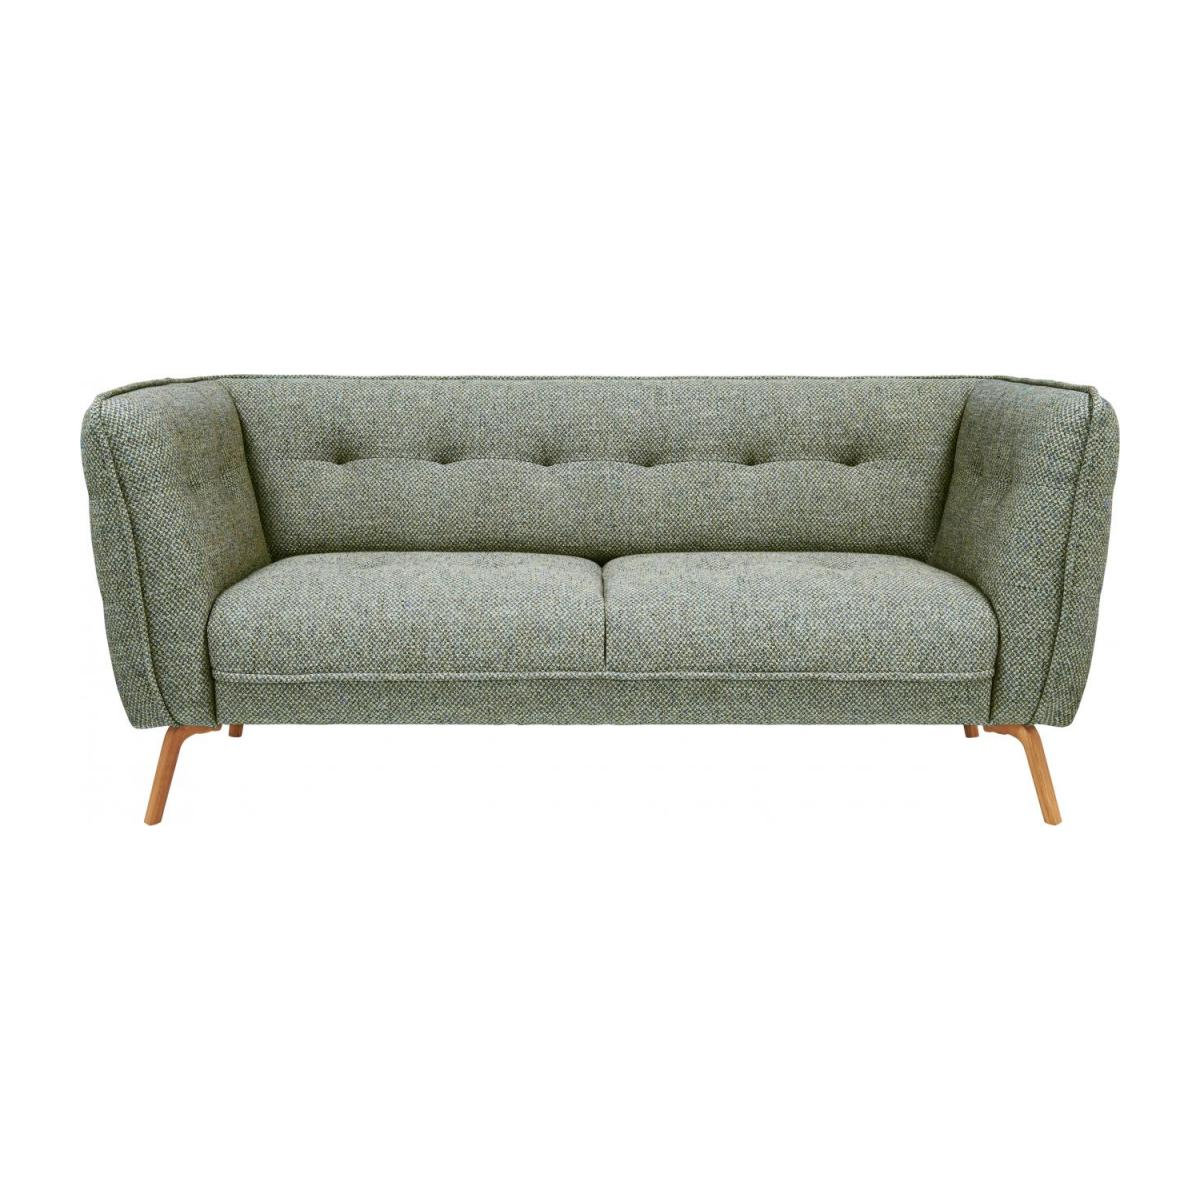 2 seater sofa in Bellagio fabric, organic green and oak legs n°2